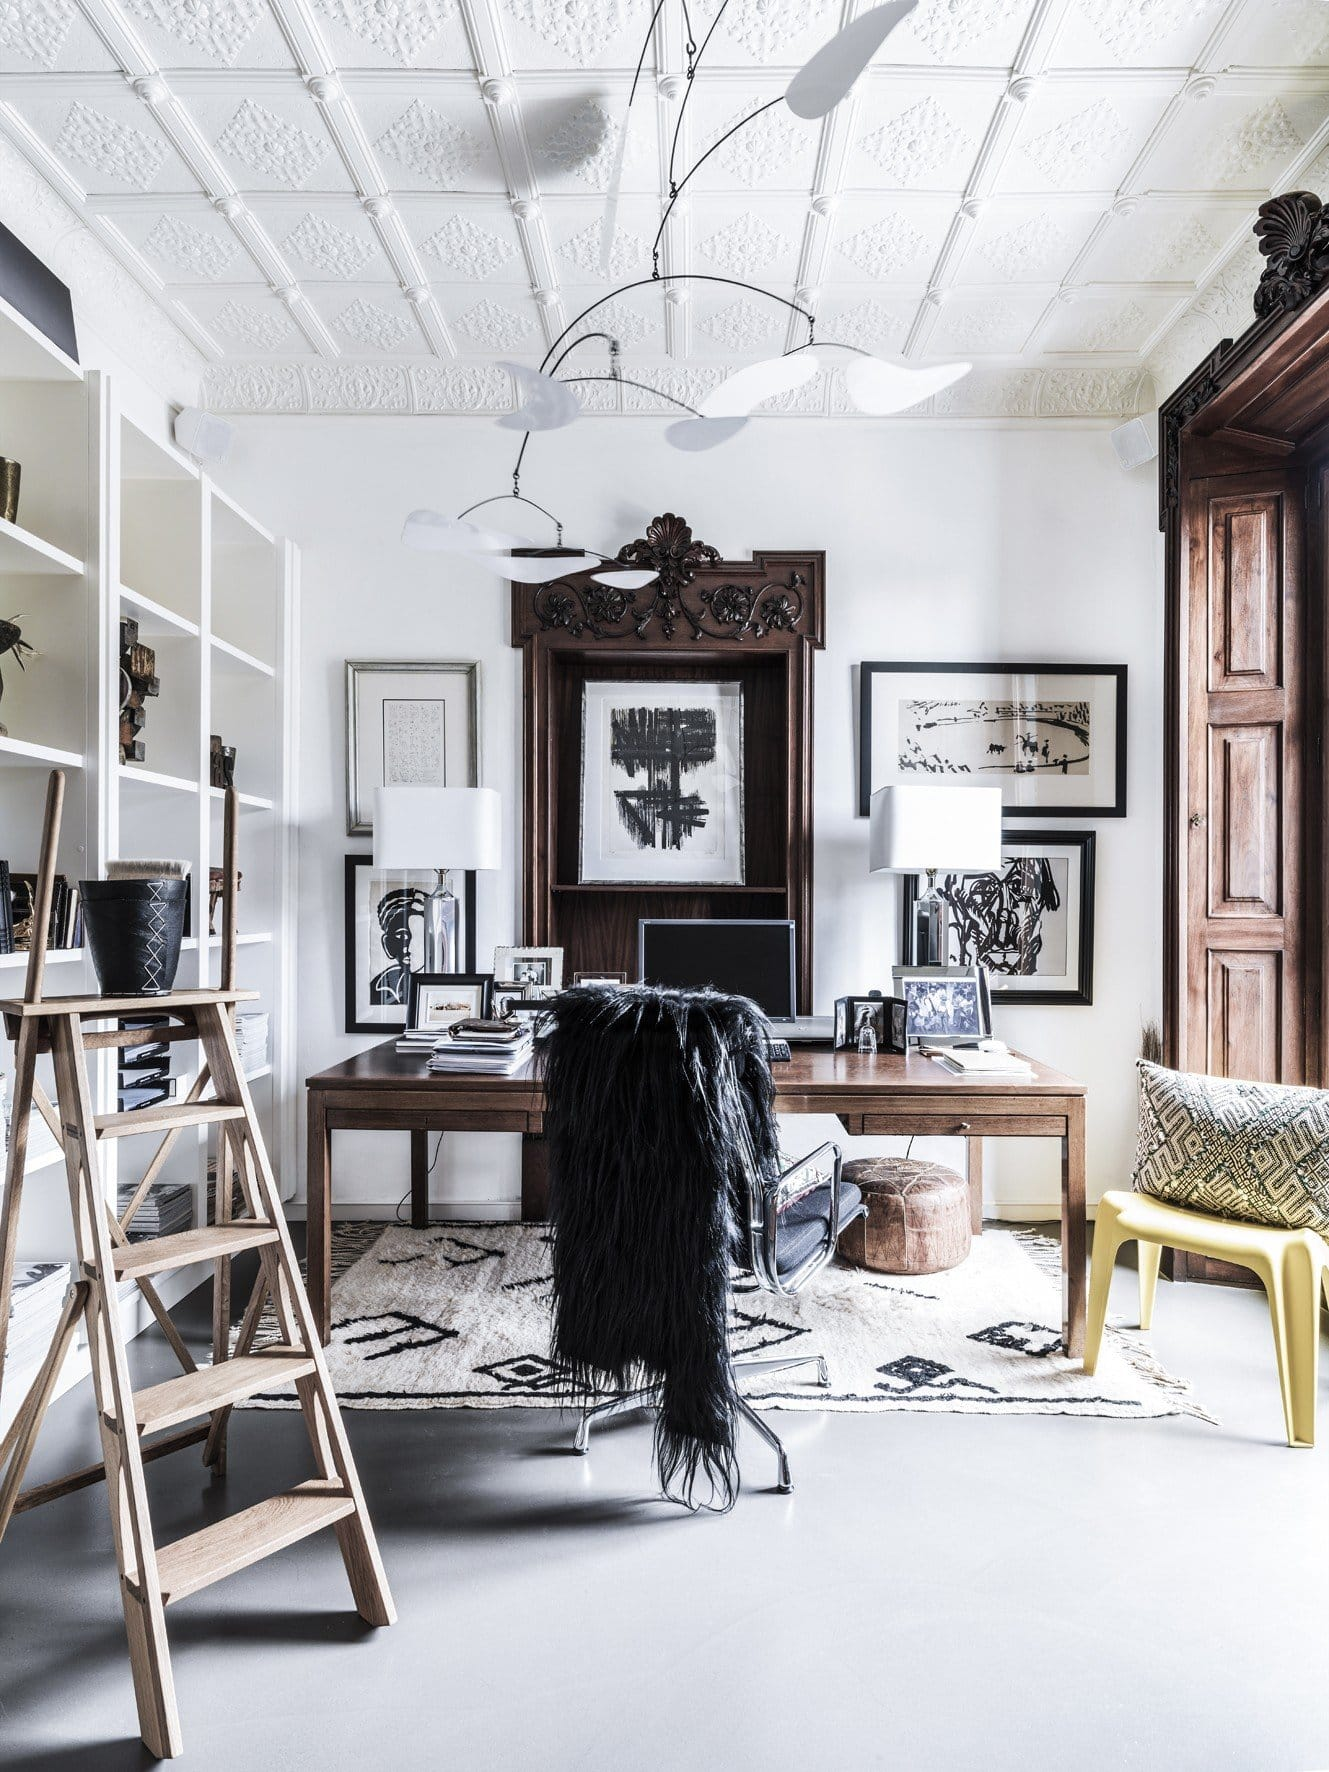 Move and work by malene birger the style office for Home interior work